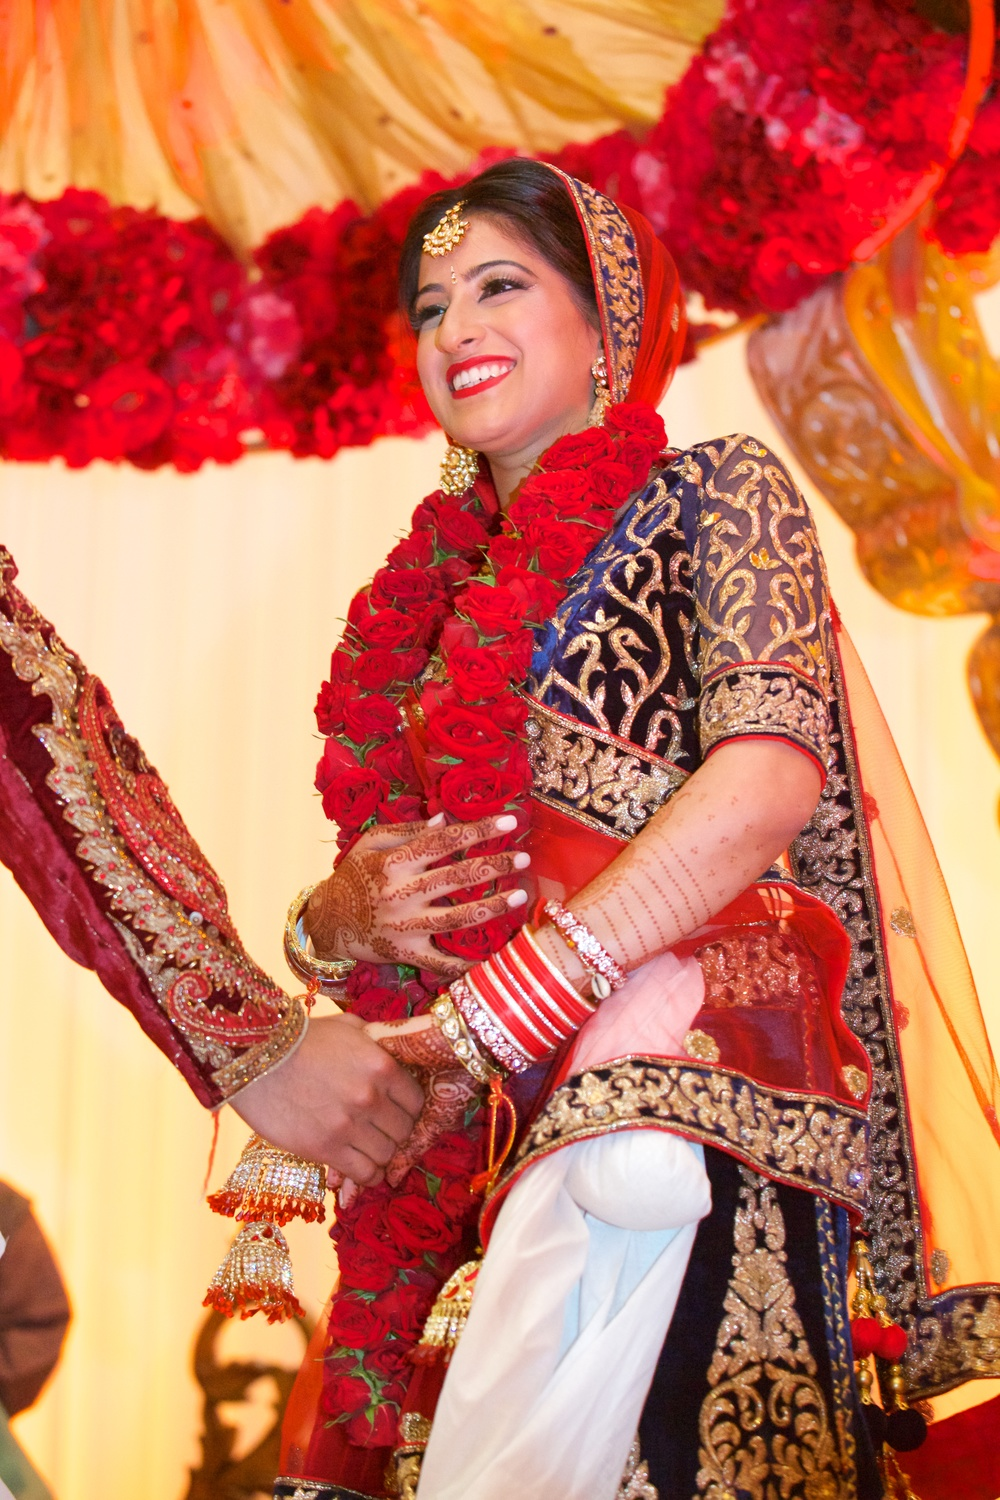 Le Cape Weddings - Indian Wedding - Day 4 - Megan and Karthik Ceremony  58.jpg